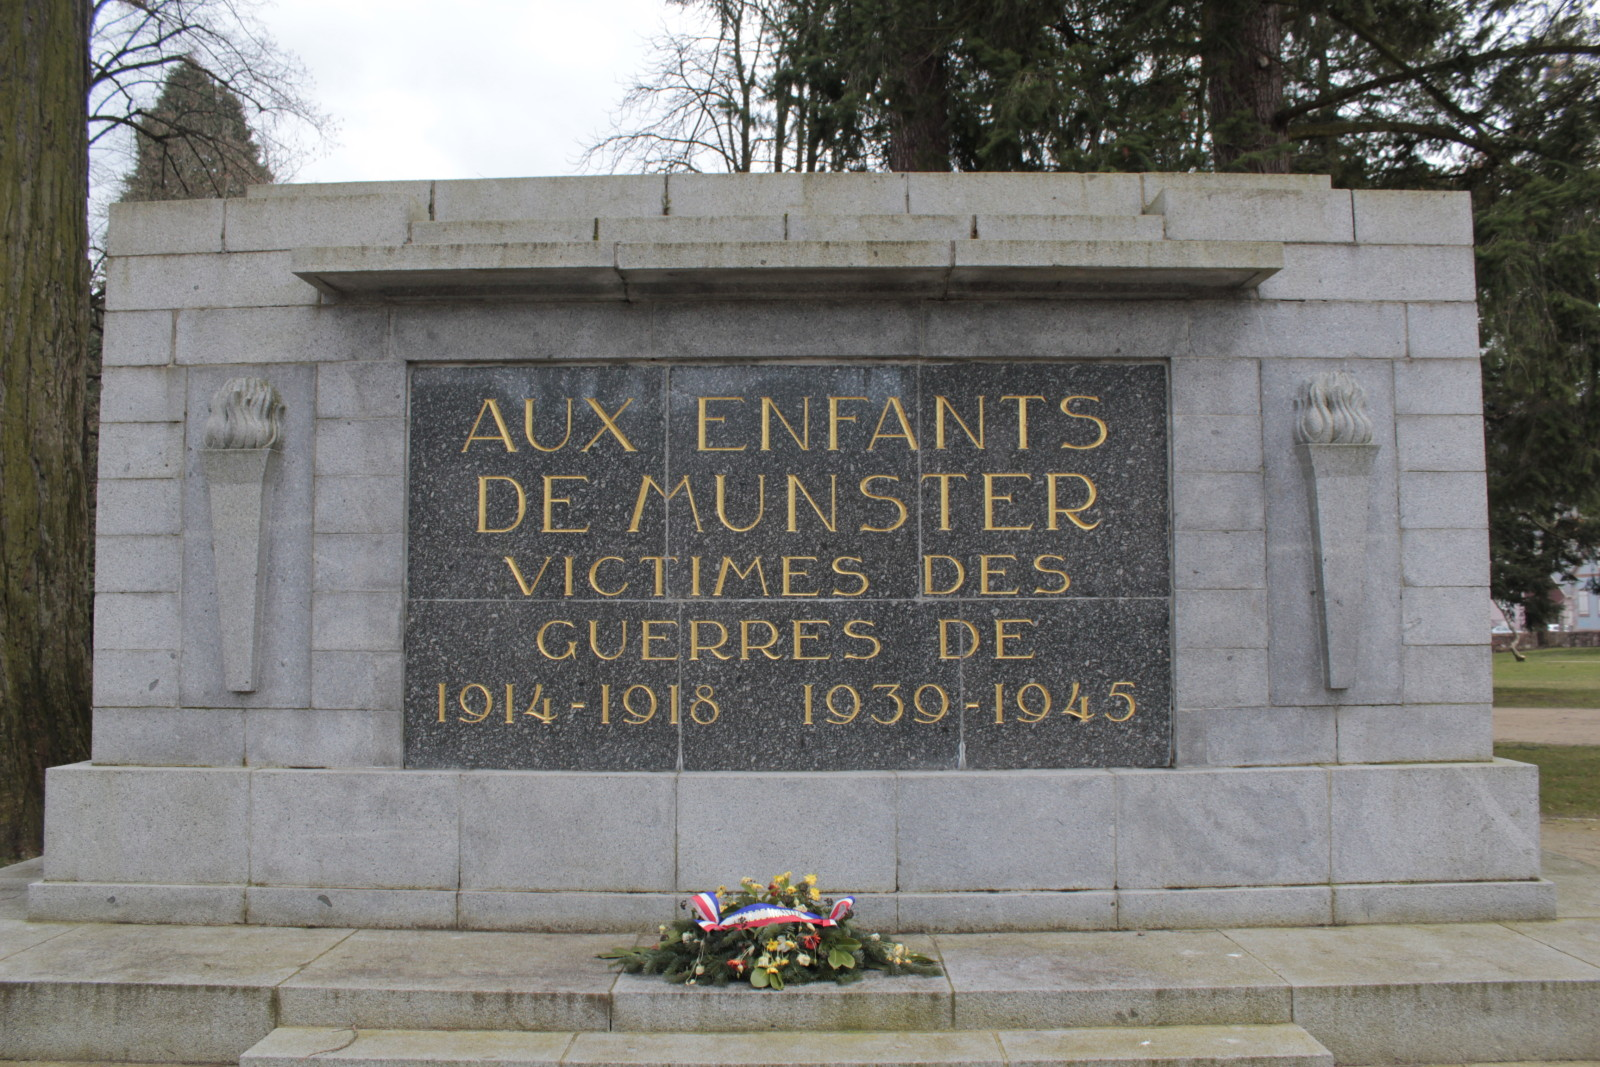 Le monument aux morts de Munster